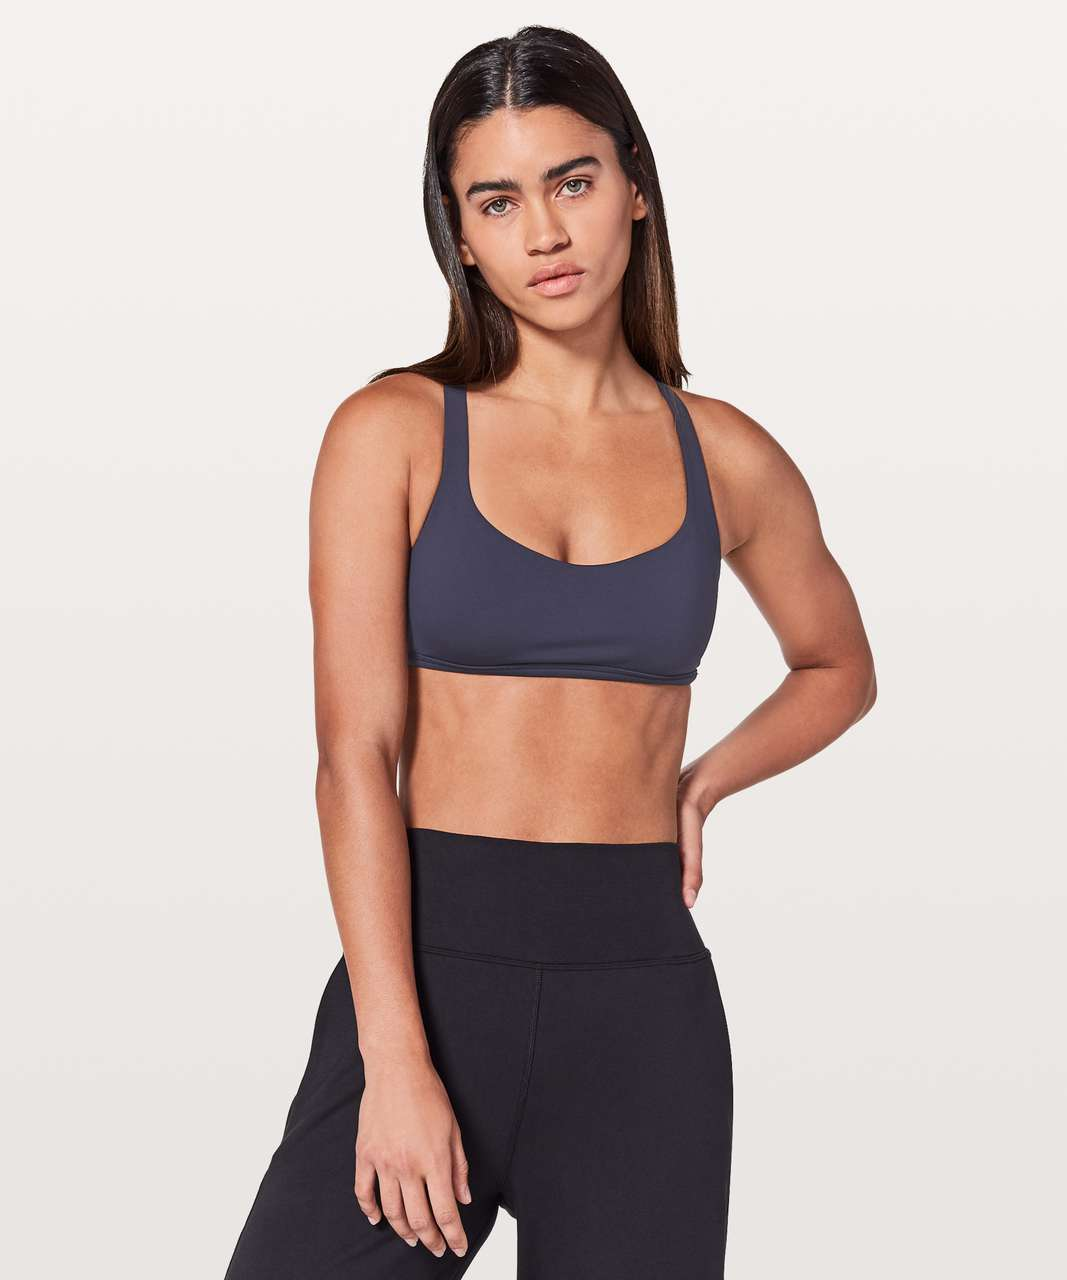 Lululemon Free To Be Bra (Wild) - Midnight Navy